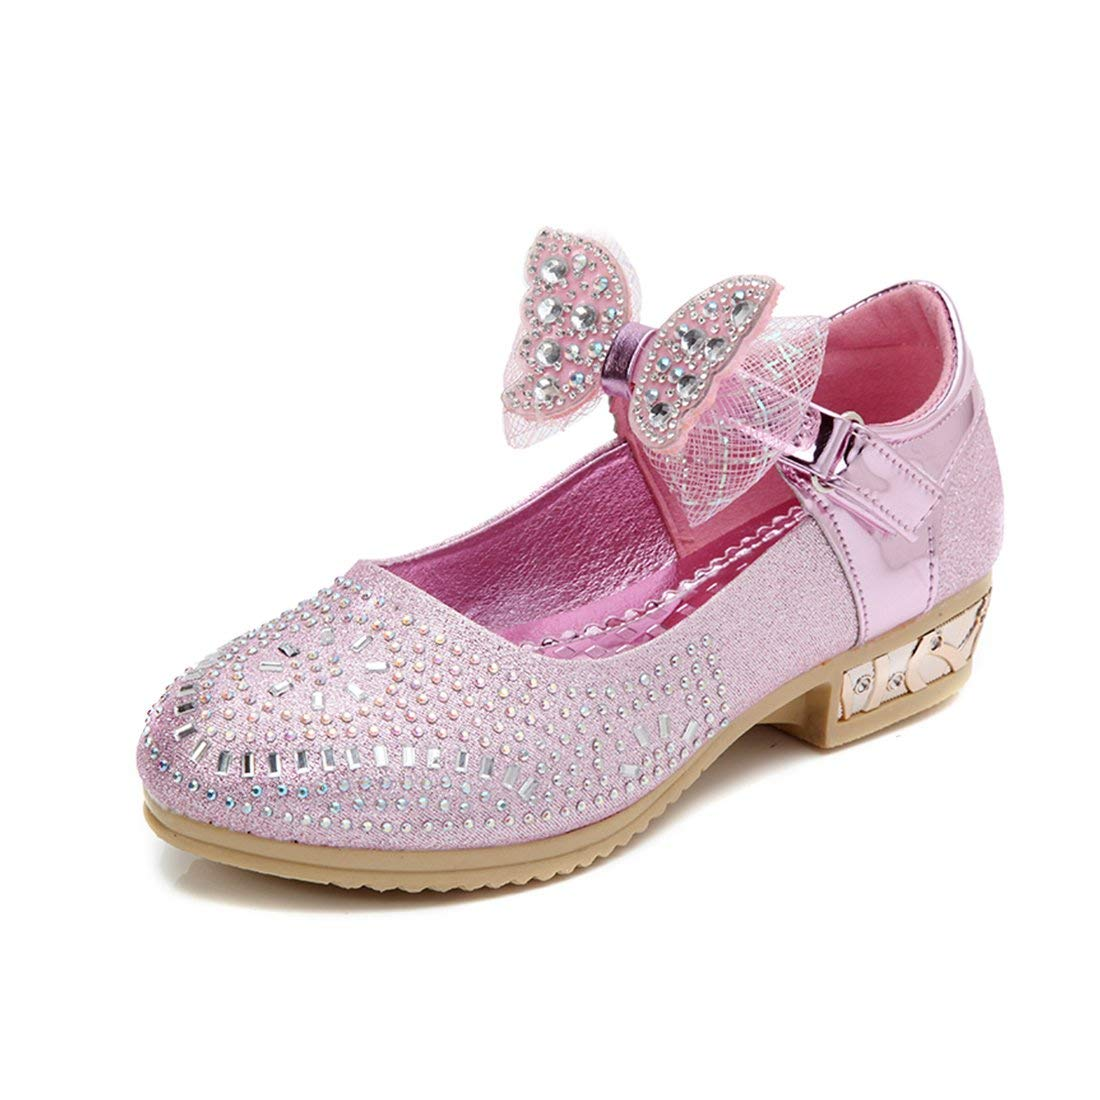 YIBLBOX Girls Kids Toddler Dress up Cosplay Princess Wedding Shoes Mary Jane Low Heel Shoes